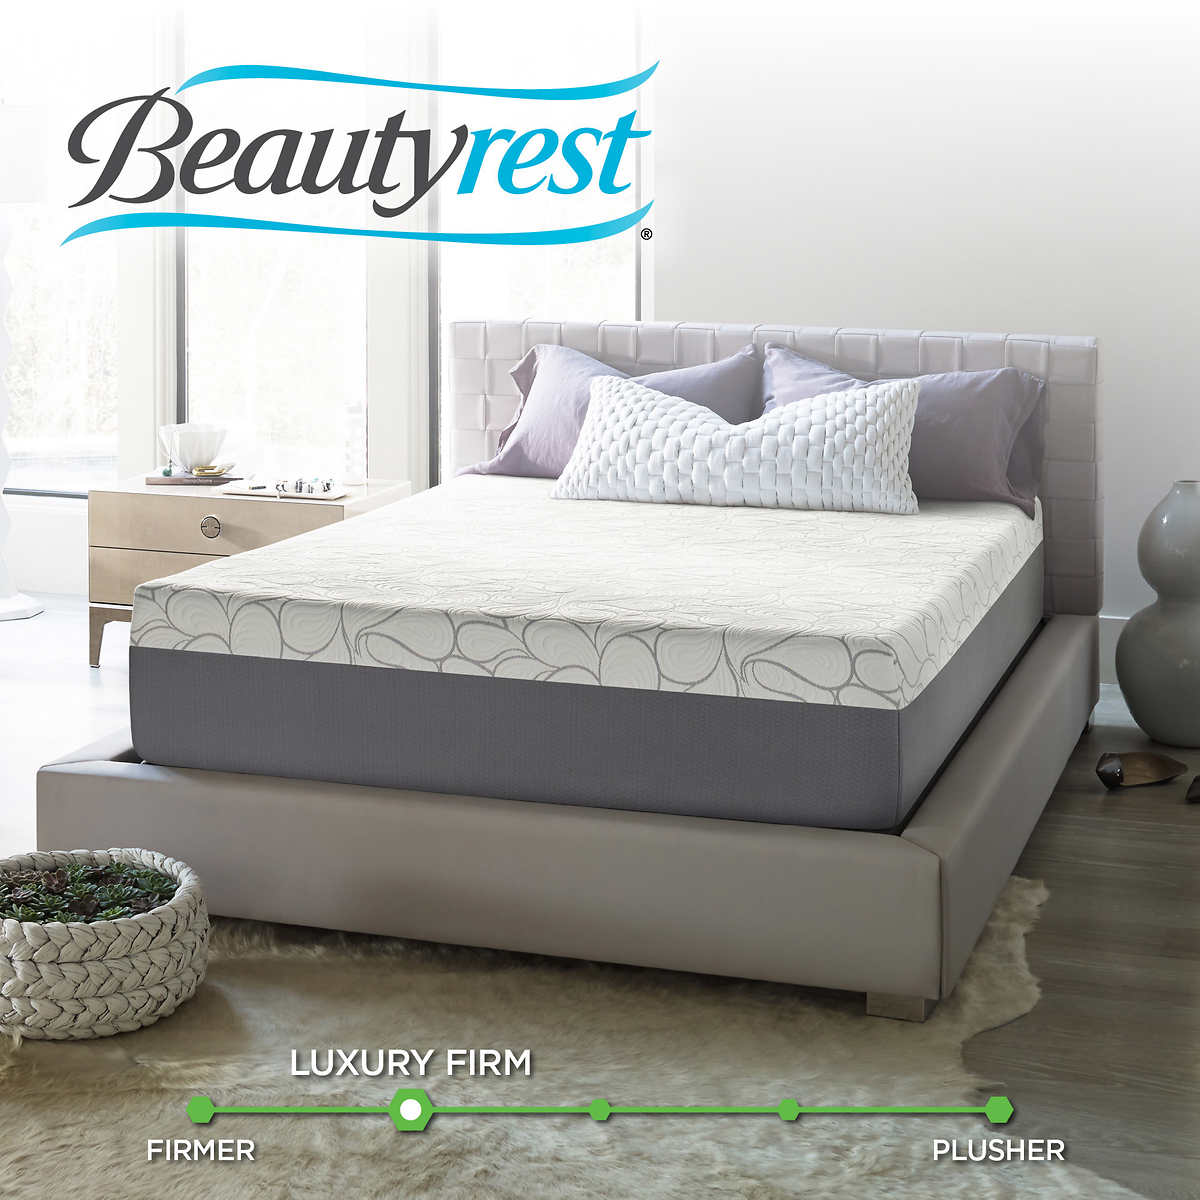 simmons beautyrest mattress beautyrest recharge shakespeare warranty on simmons beautyrest mattress